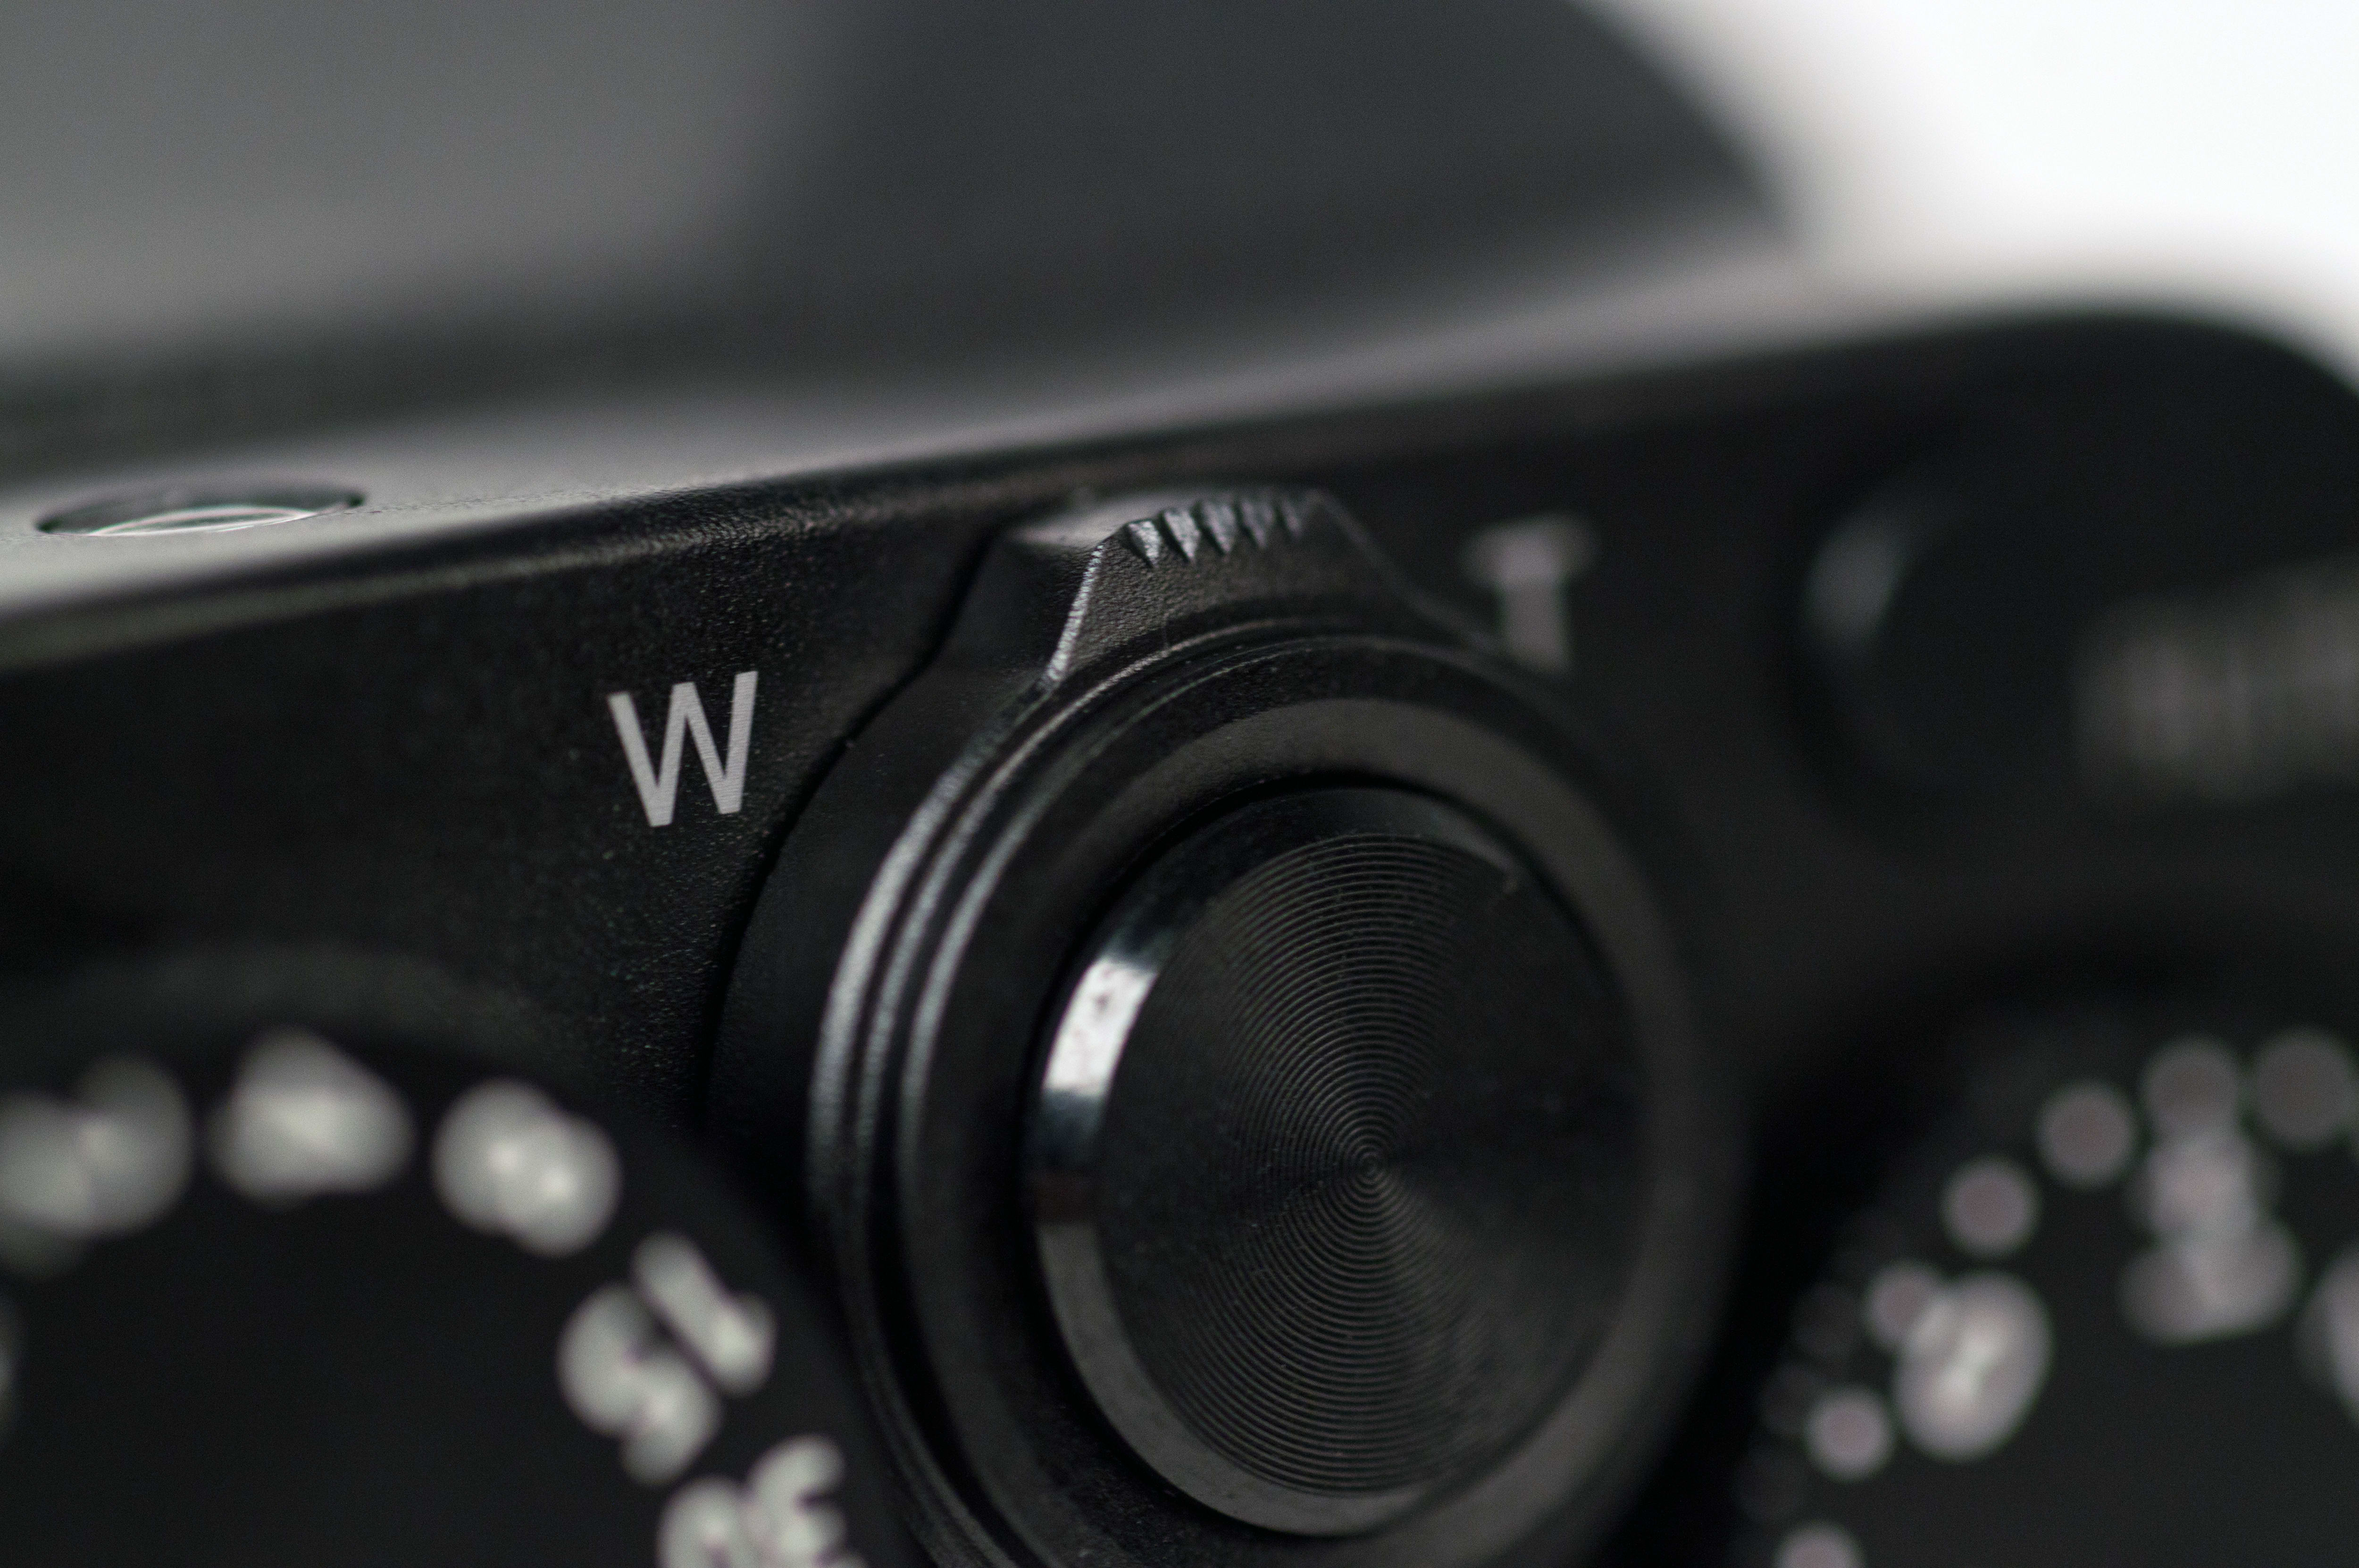 A photograph of the Panasonic Lumix LX100's zoom slider and shutter release.